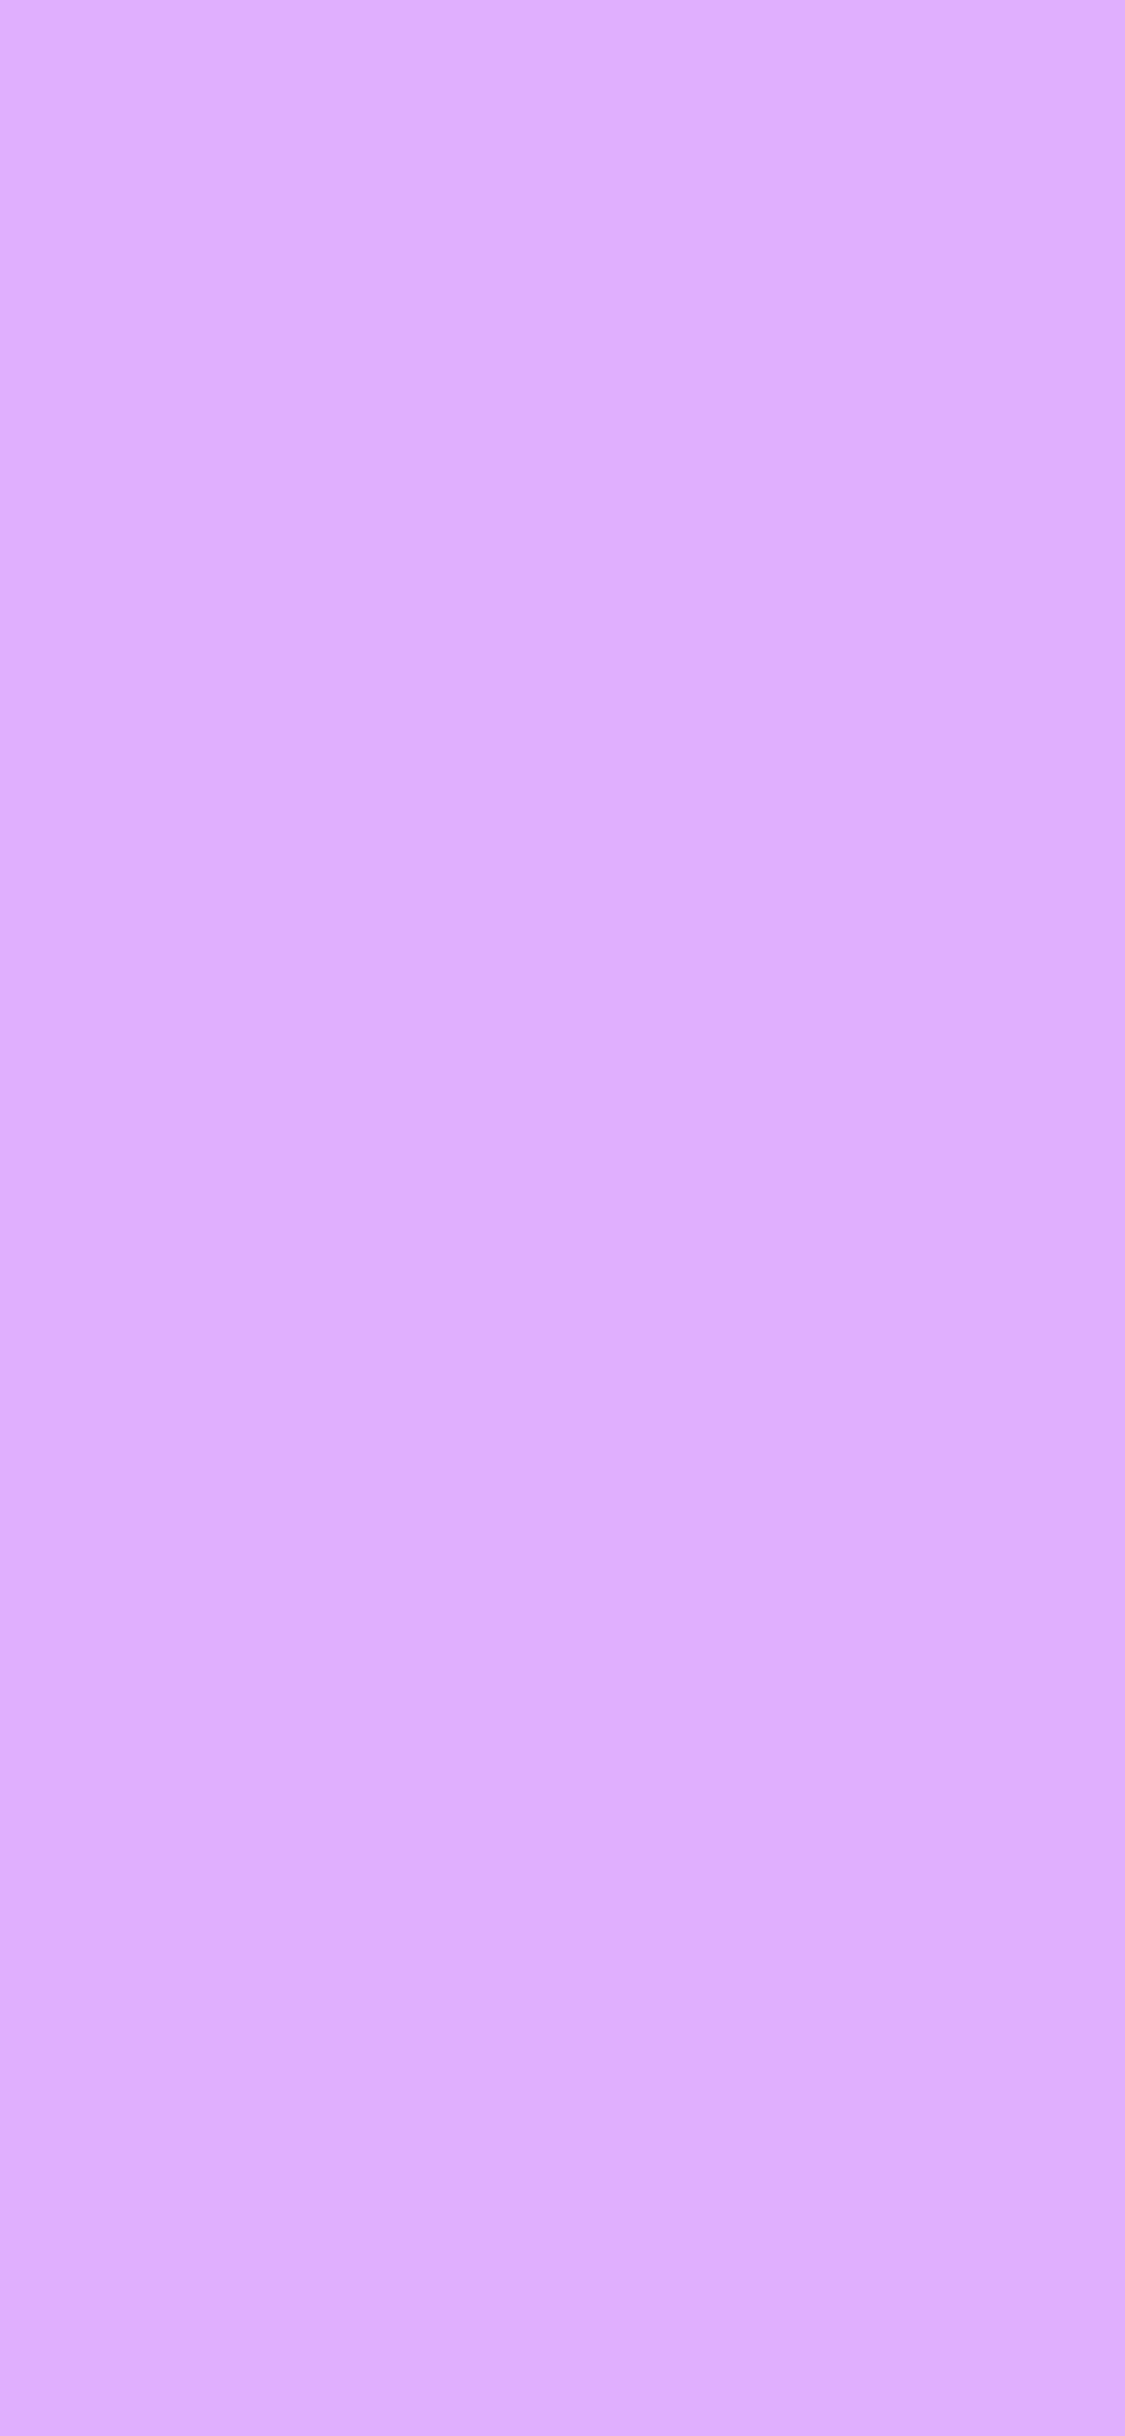 1125x2436 Mauve Solid Color Background